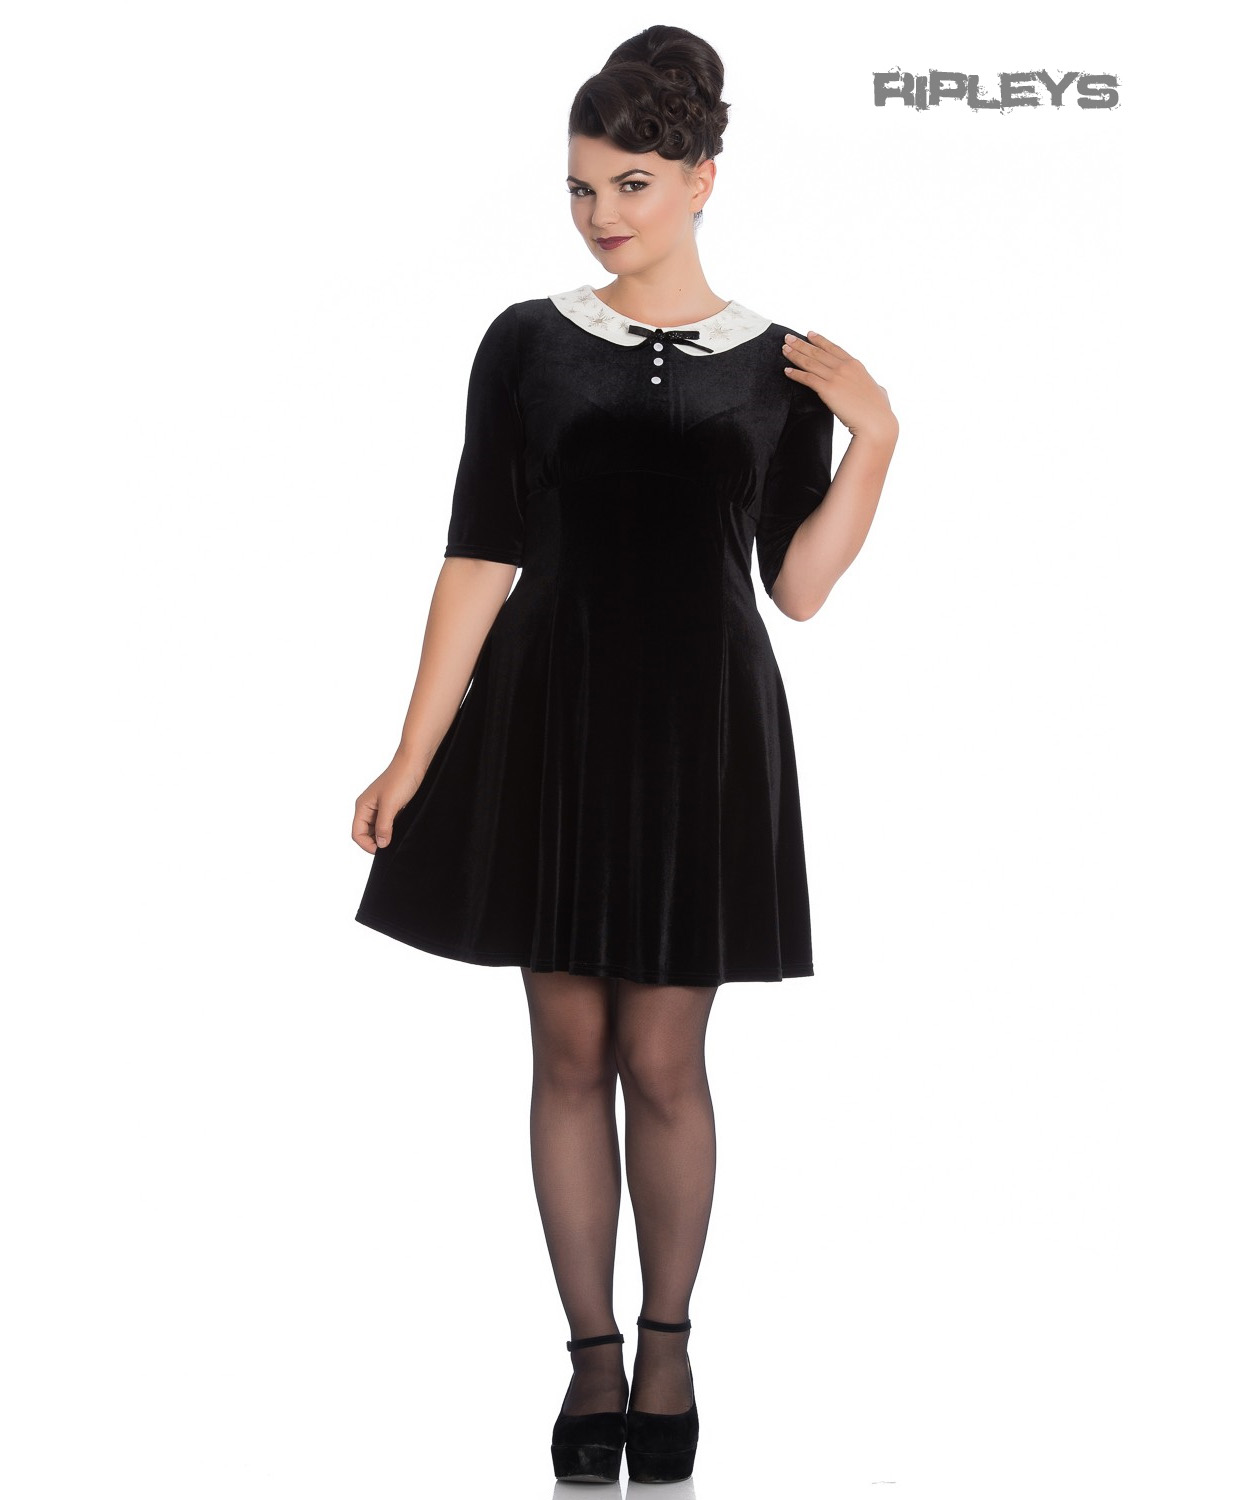 Hell-Bunny-Mini-Skater-Dress-Festive-Christmas-SNOWY-Black-Snowflakes-All-Sizes thumbnail 6